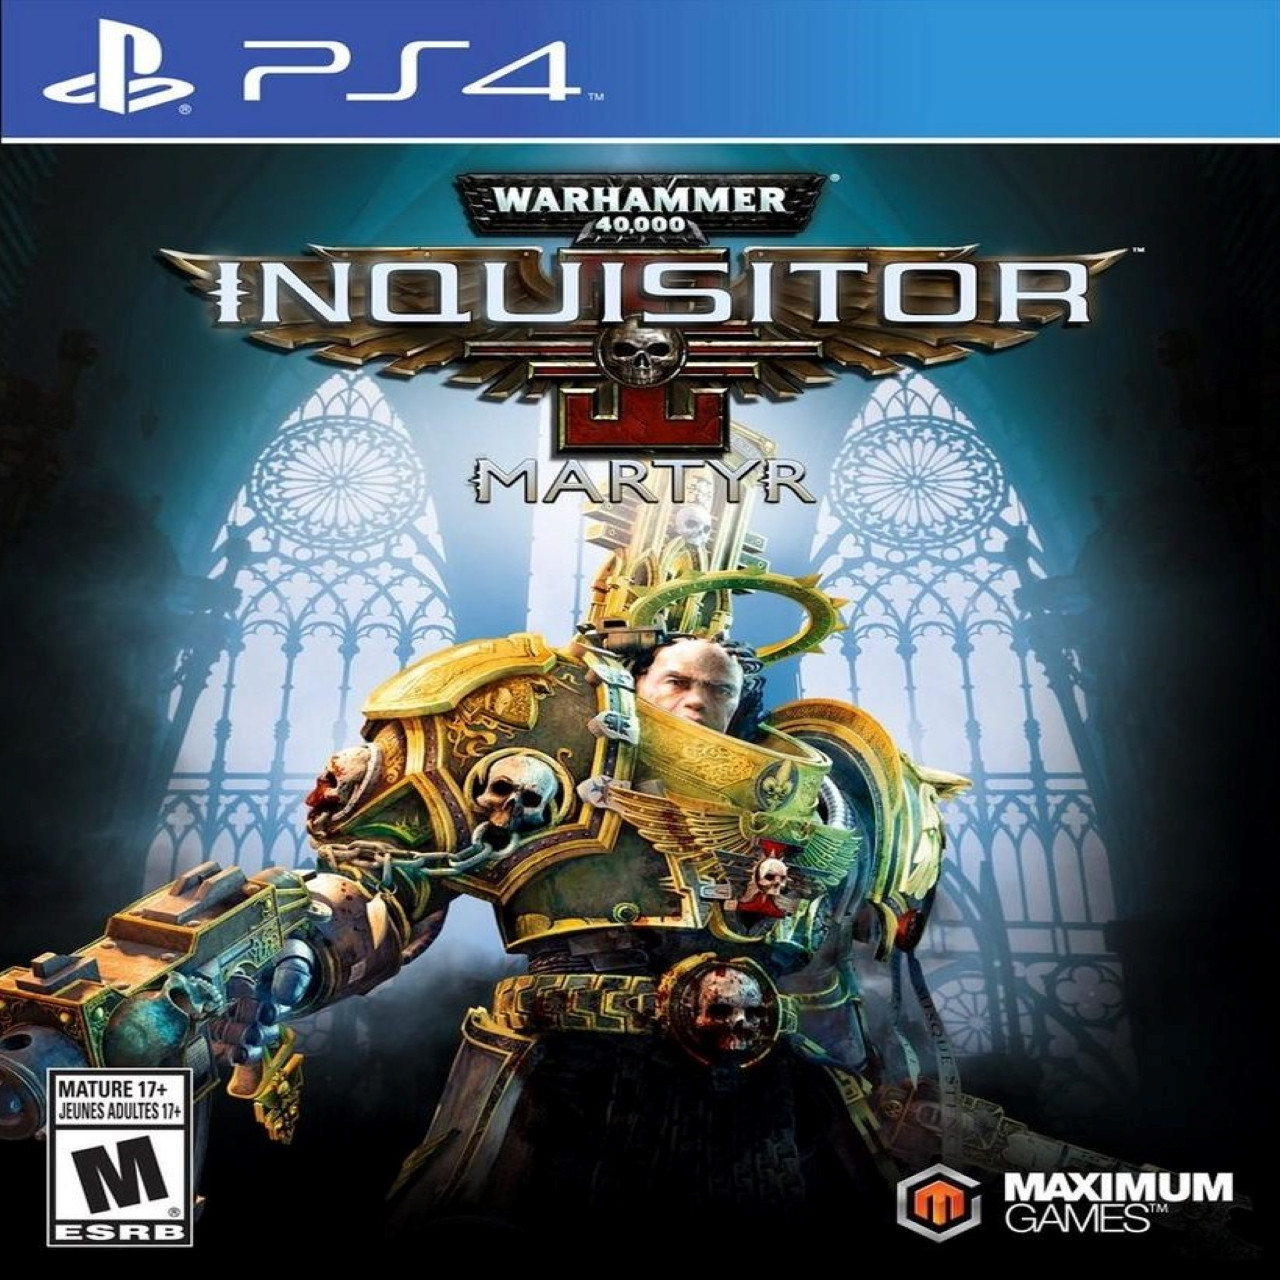 Warhammer 40,000: Inquisitor - Martyr SUB PS4 (NEW)